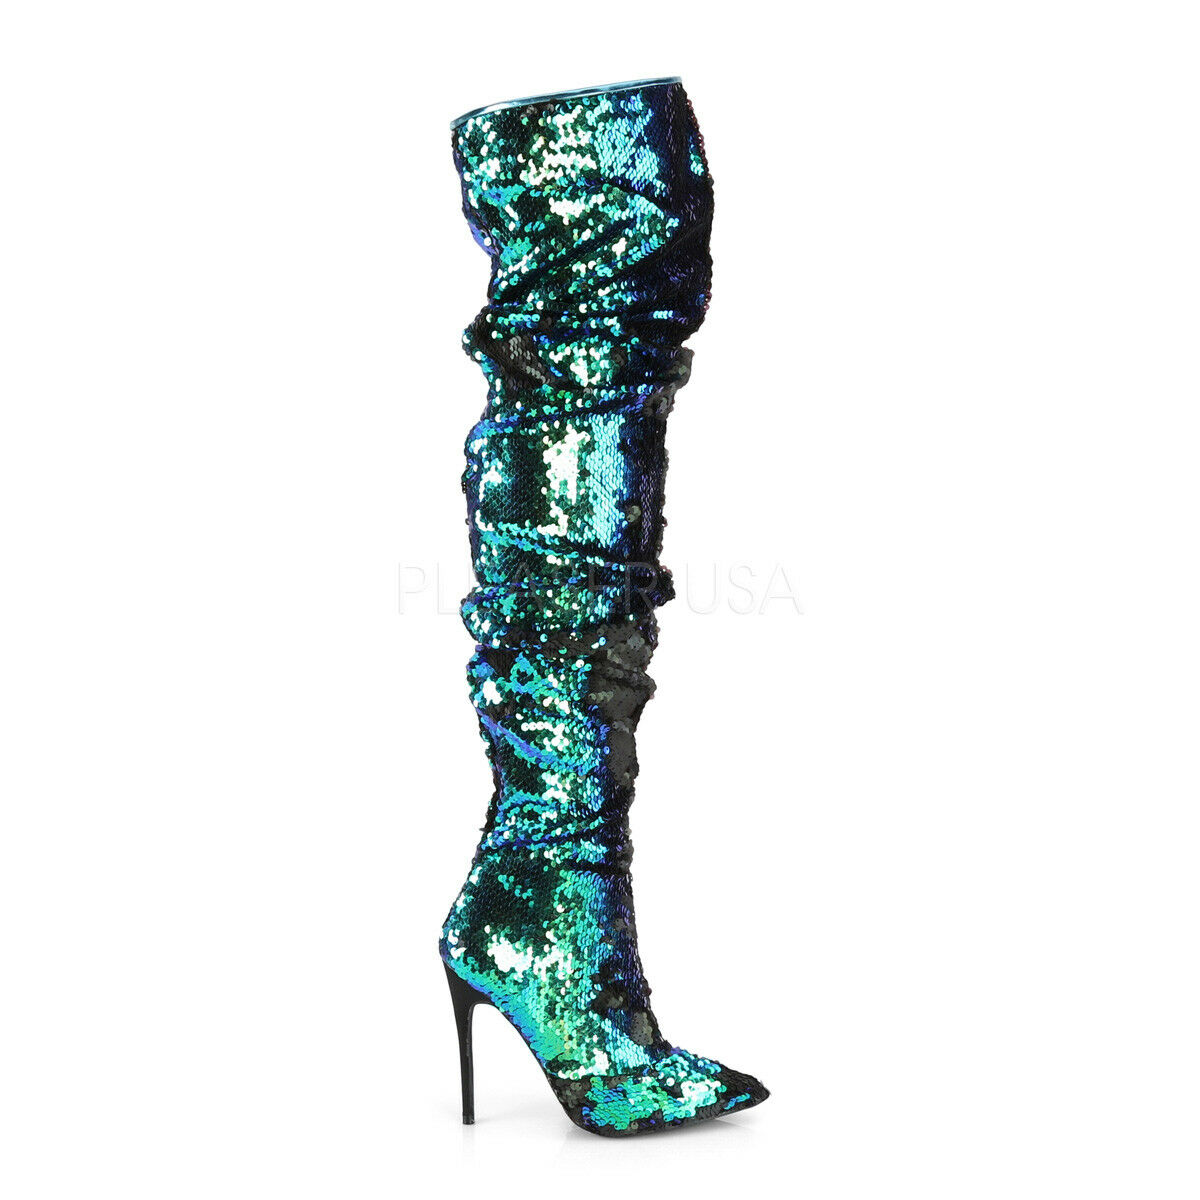 PLEASER Courtly-3011 Green iridescent Sequin Thigh Boots UK 4    EU 37 IN STOCK b86f90